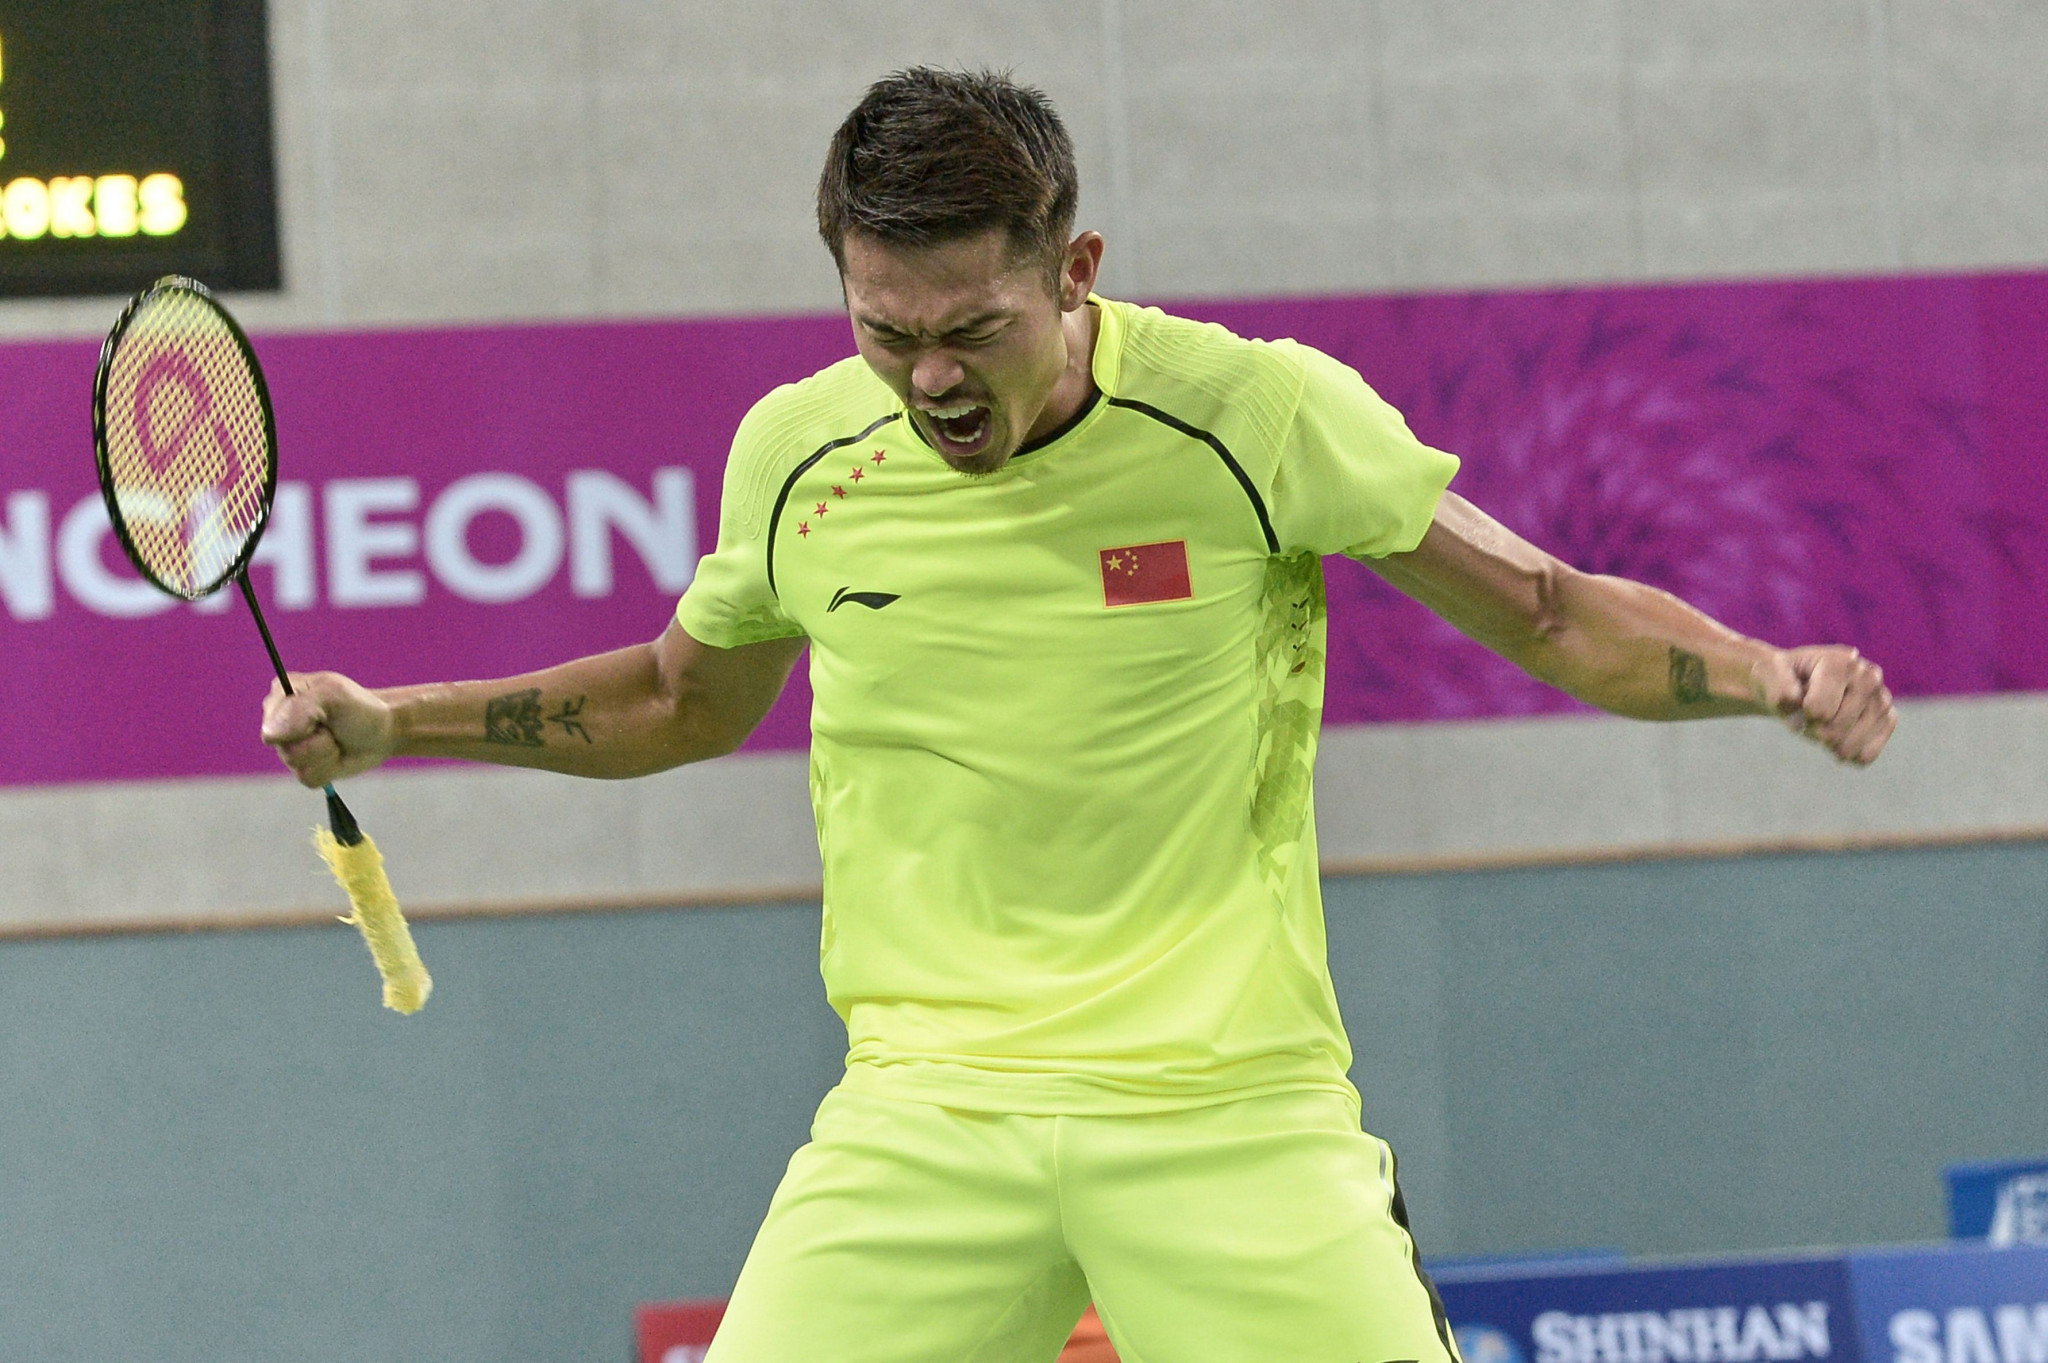 Badminton player Lin Dan was among China's 151 Asian Games gold medallists at Incheon 2014 and has been selected for Jakarta Palembang 2018 - which will be his fifth appearance in the event ©Getty Images